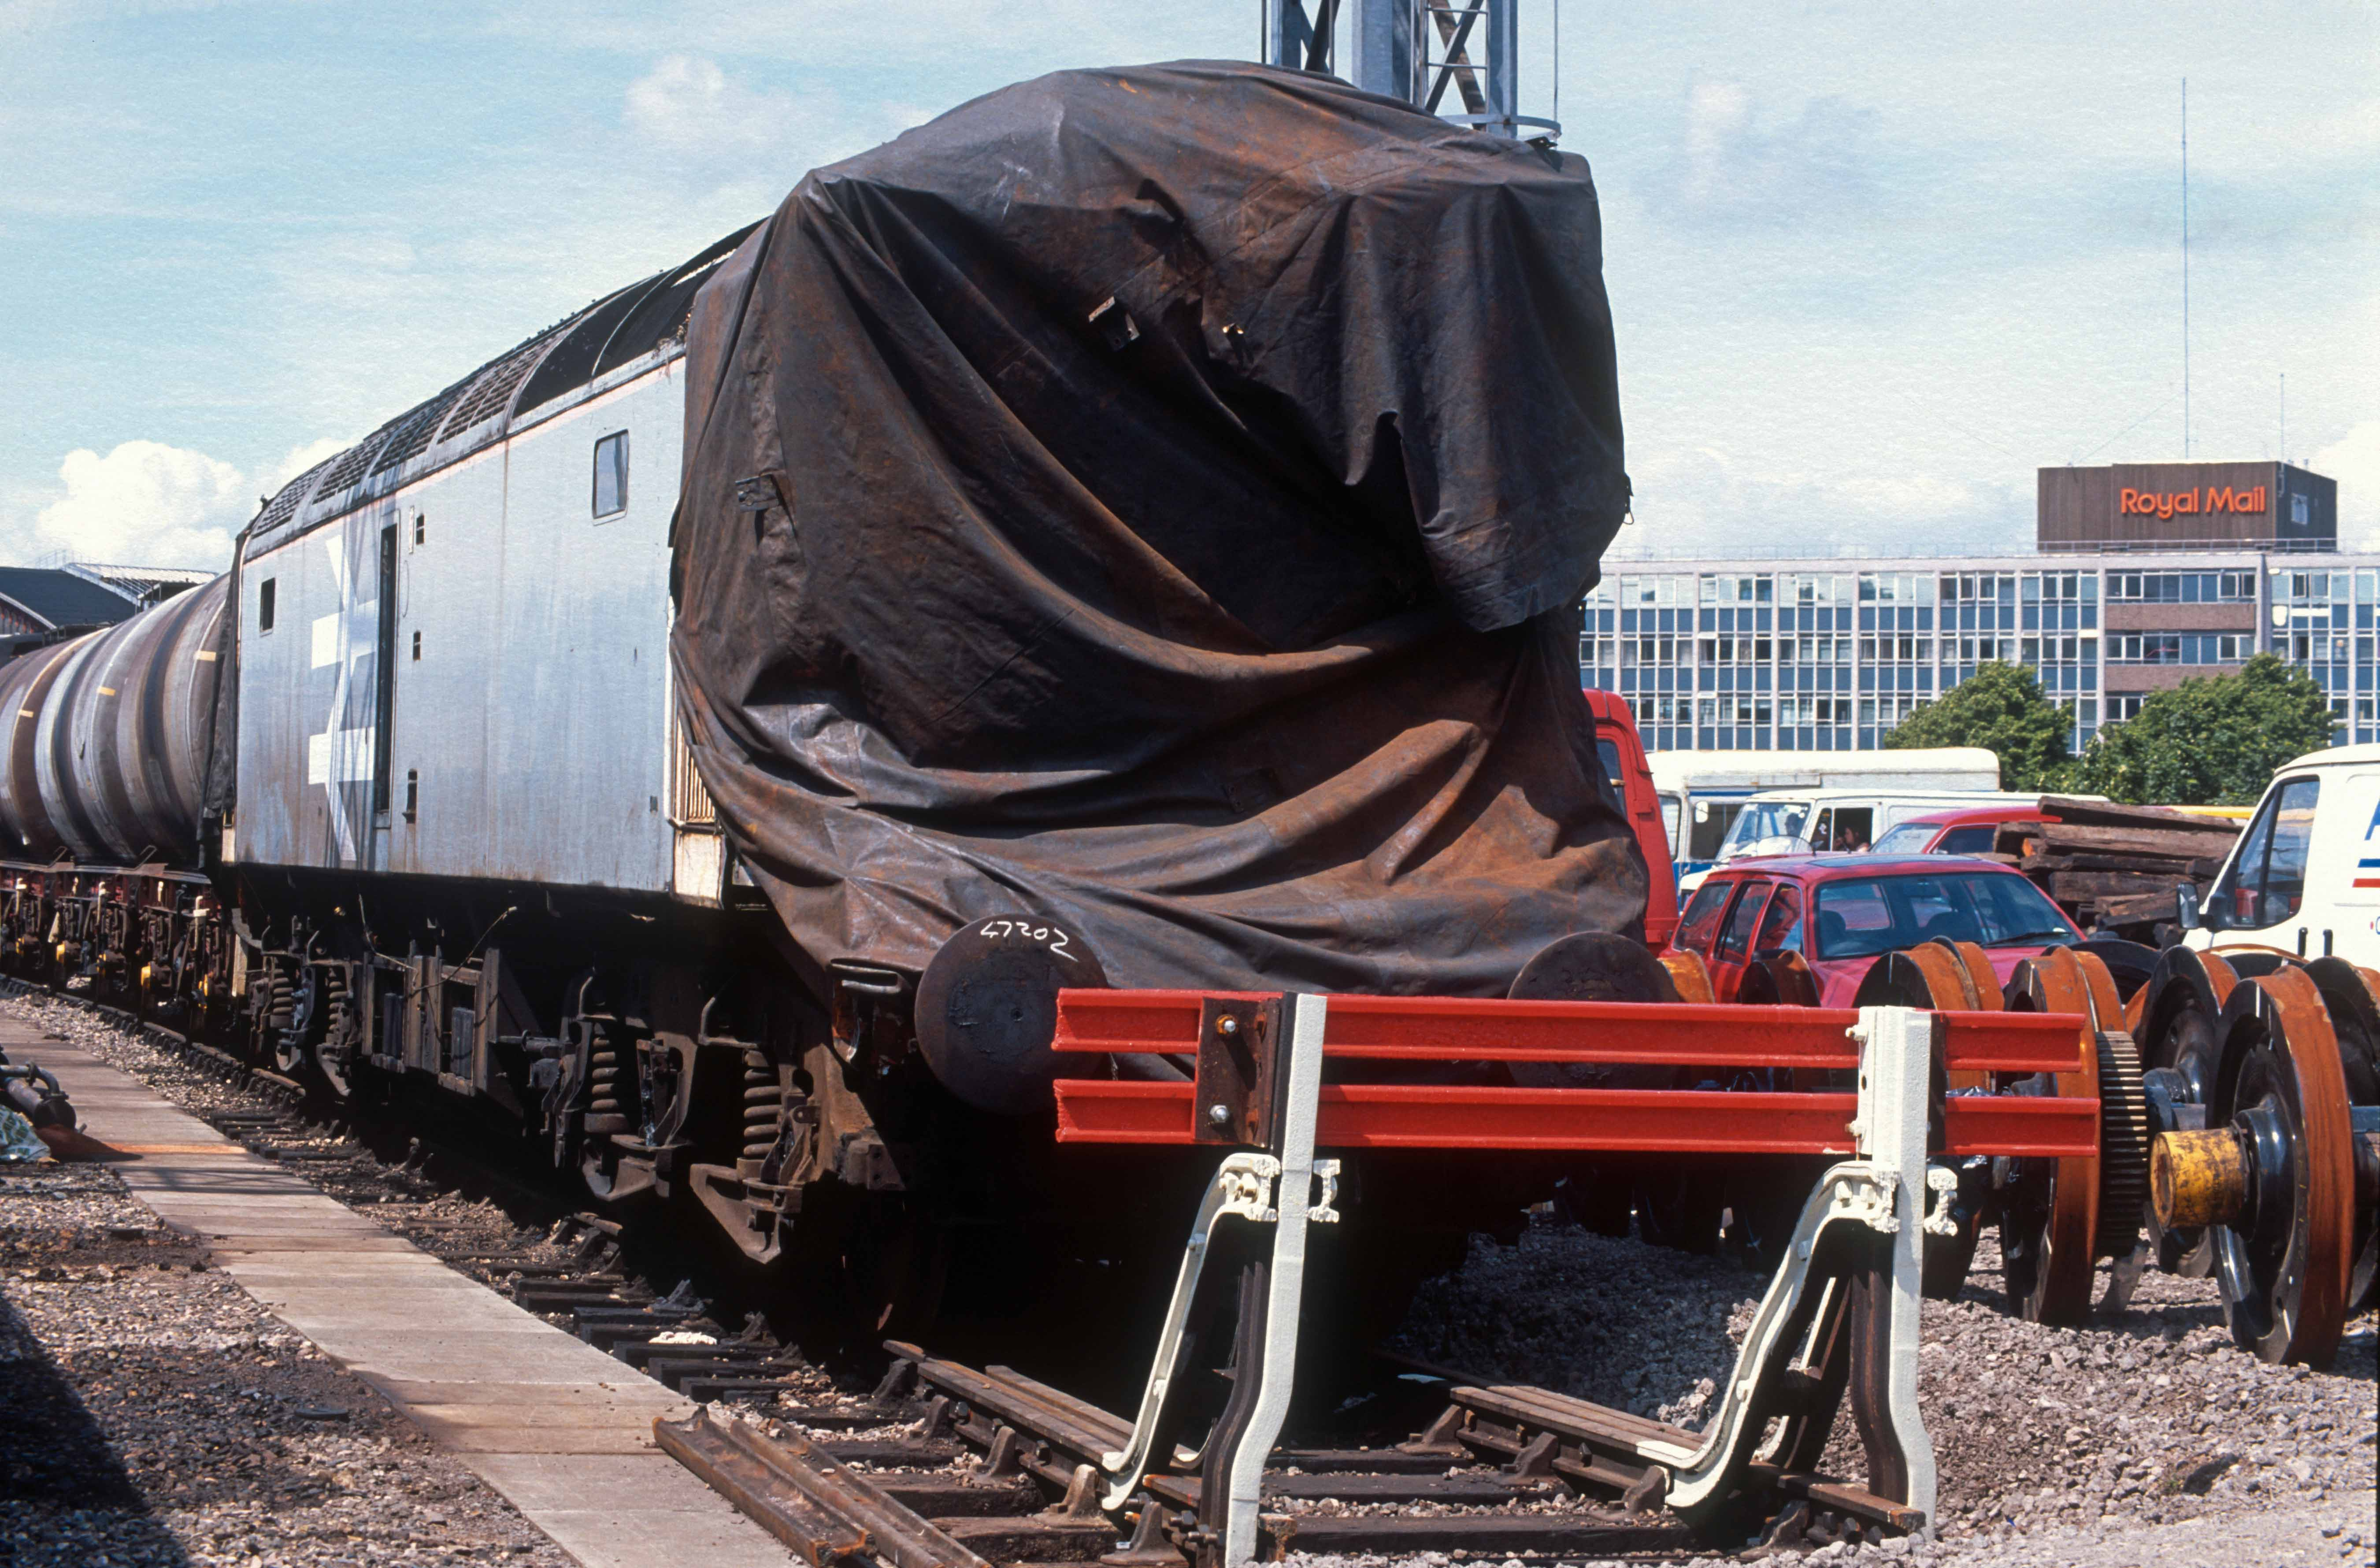 02743. 47202. Crash damaged. Bristol Bath Rd depot open day. Bristol. 26.06.1991crop